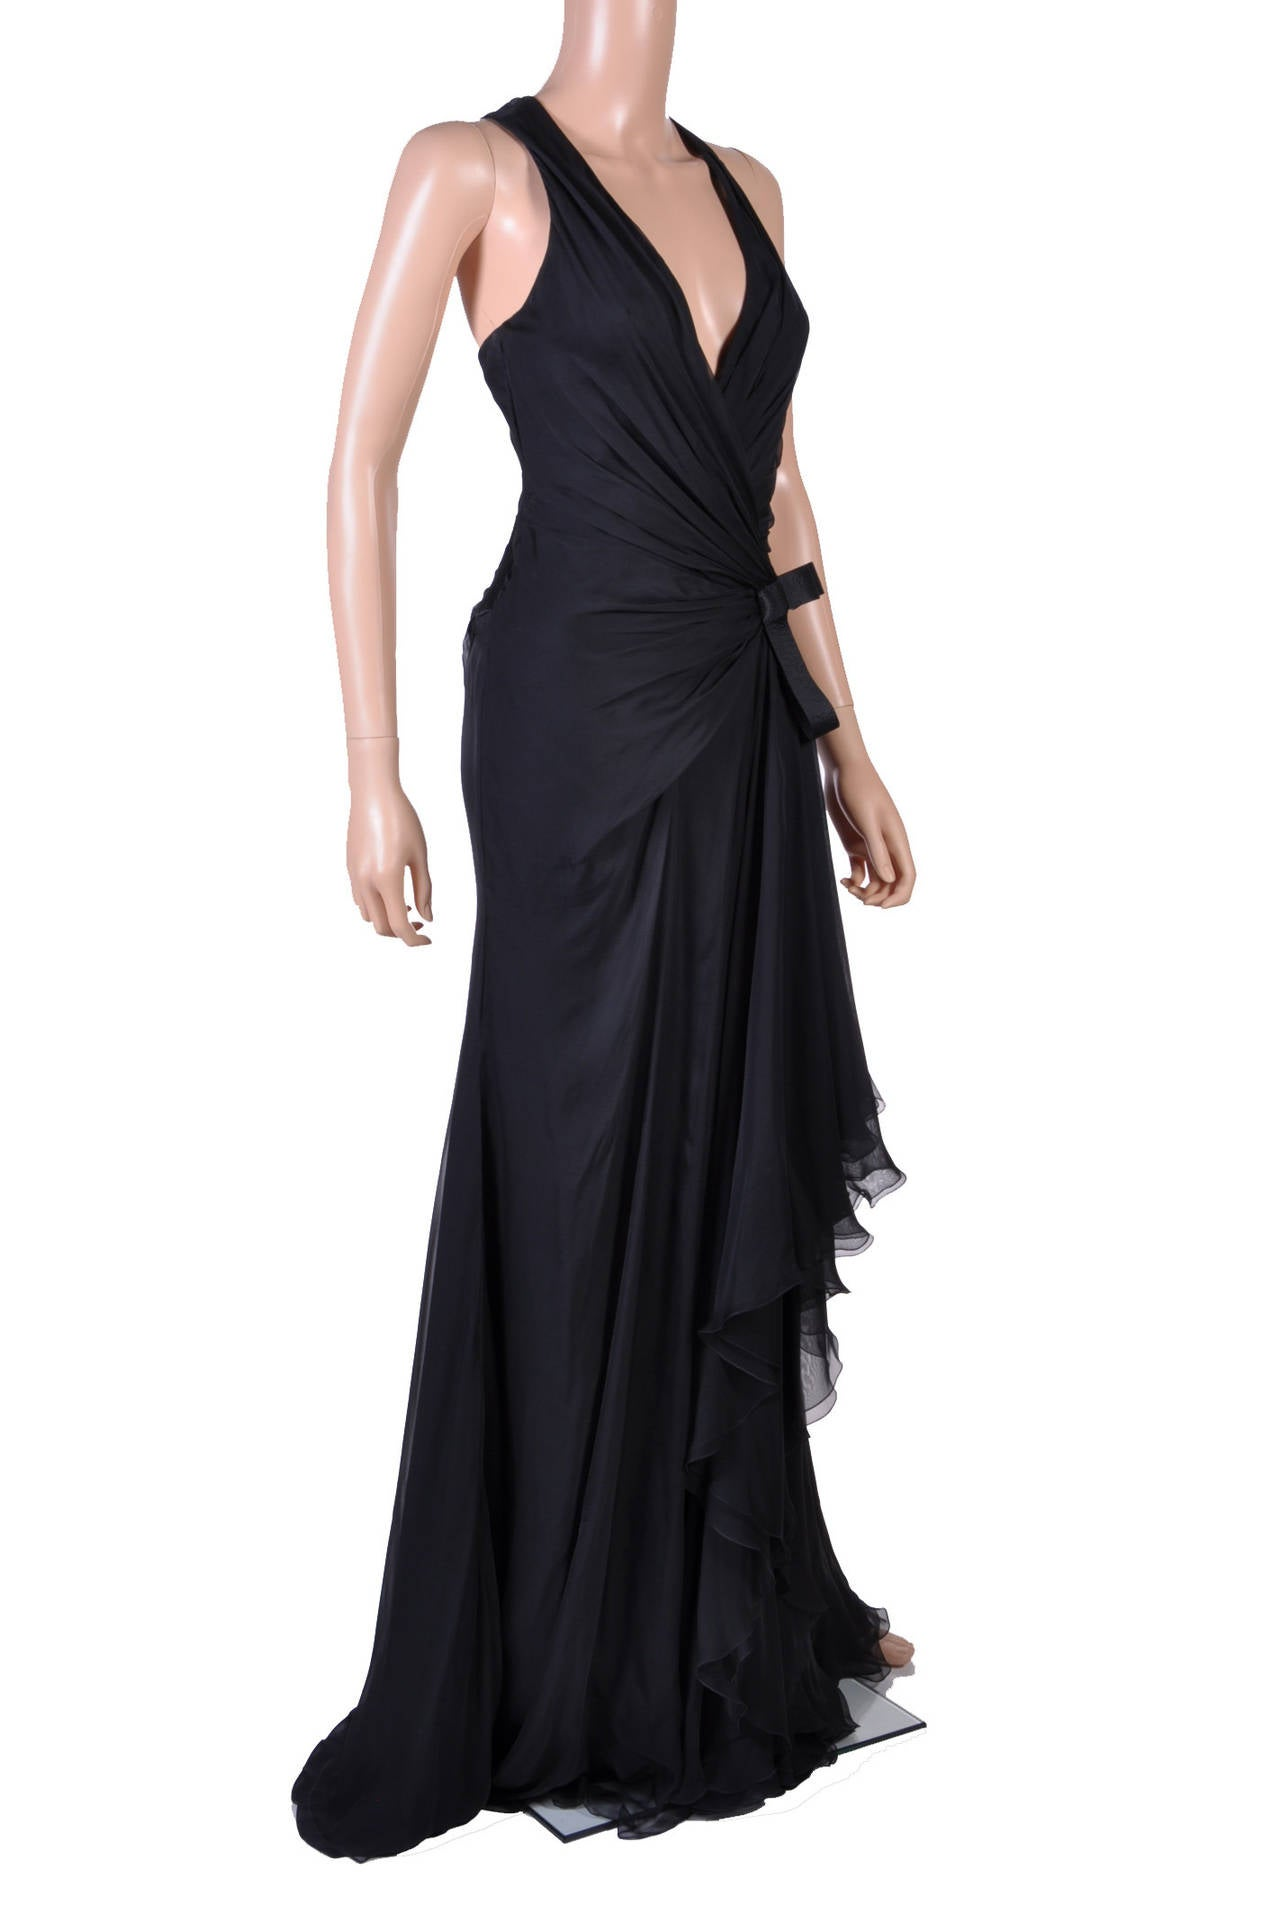 New VERSACE Black Chiffon Silk Gown 2